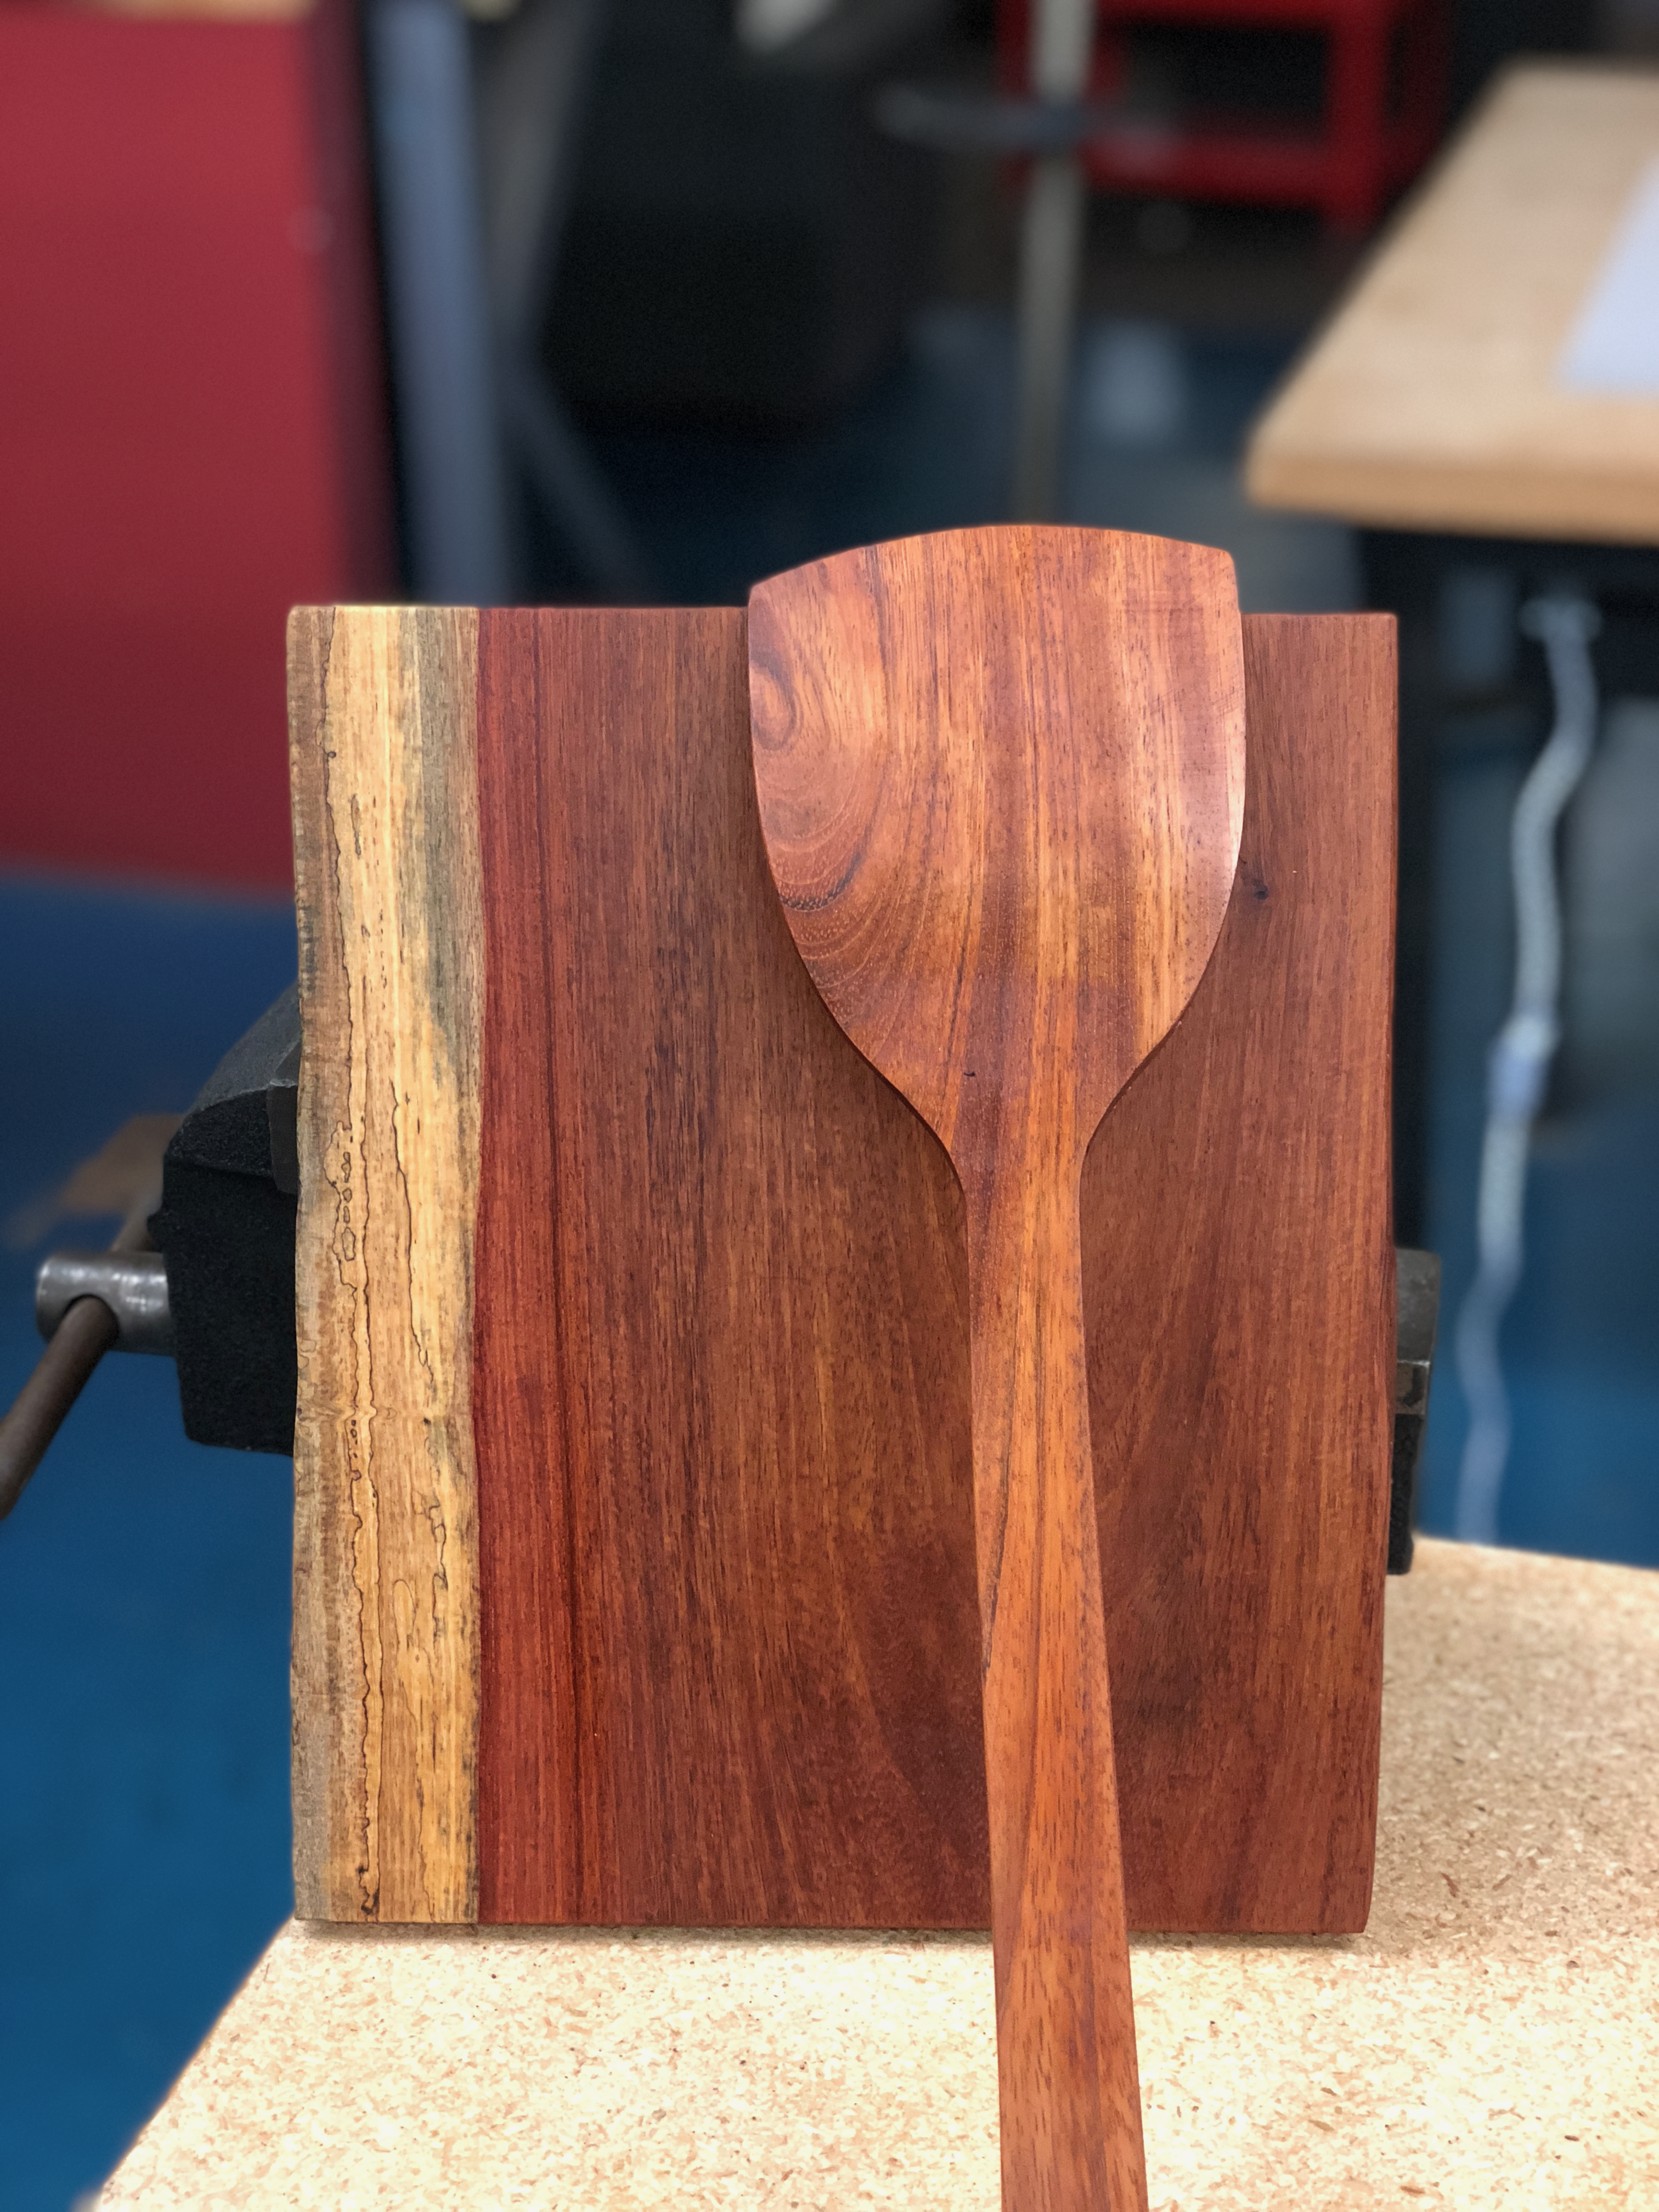 Kitchen Tools - Spatula And Serving Board